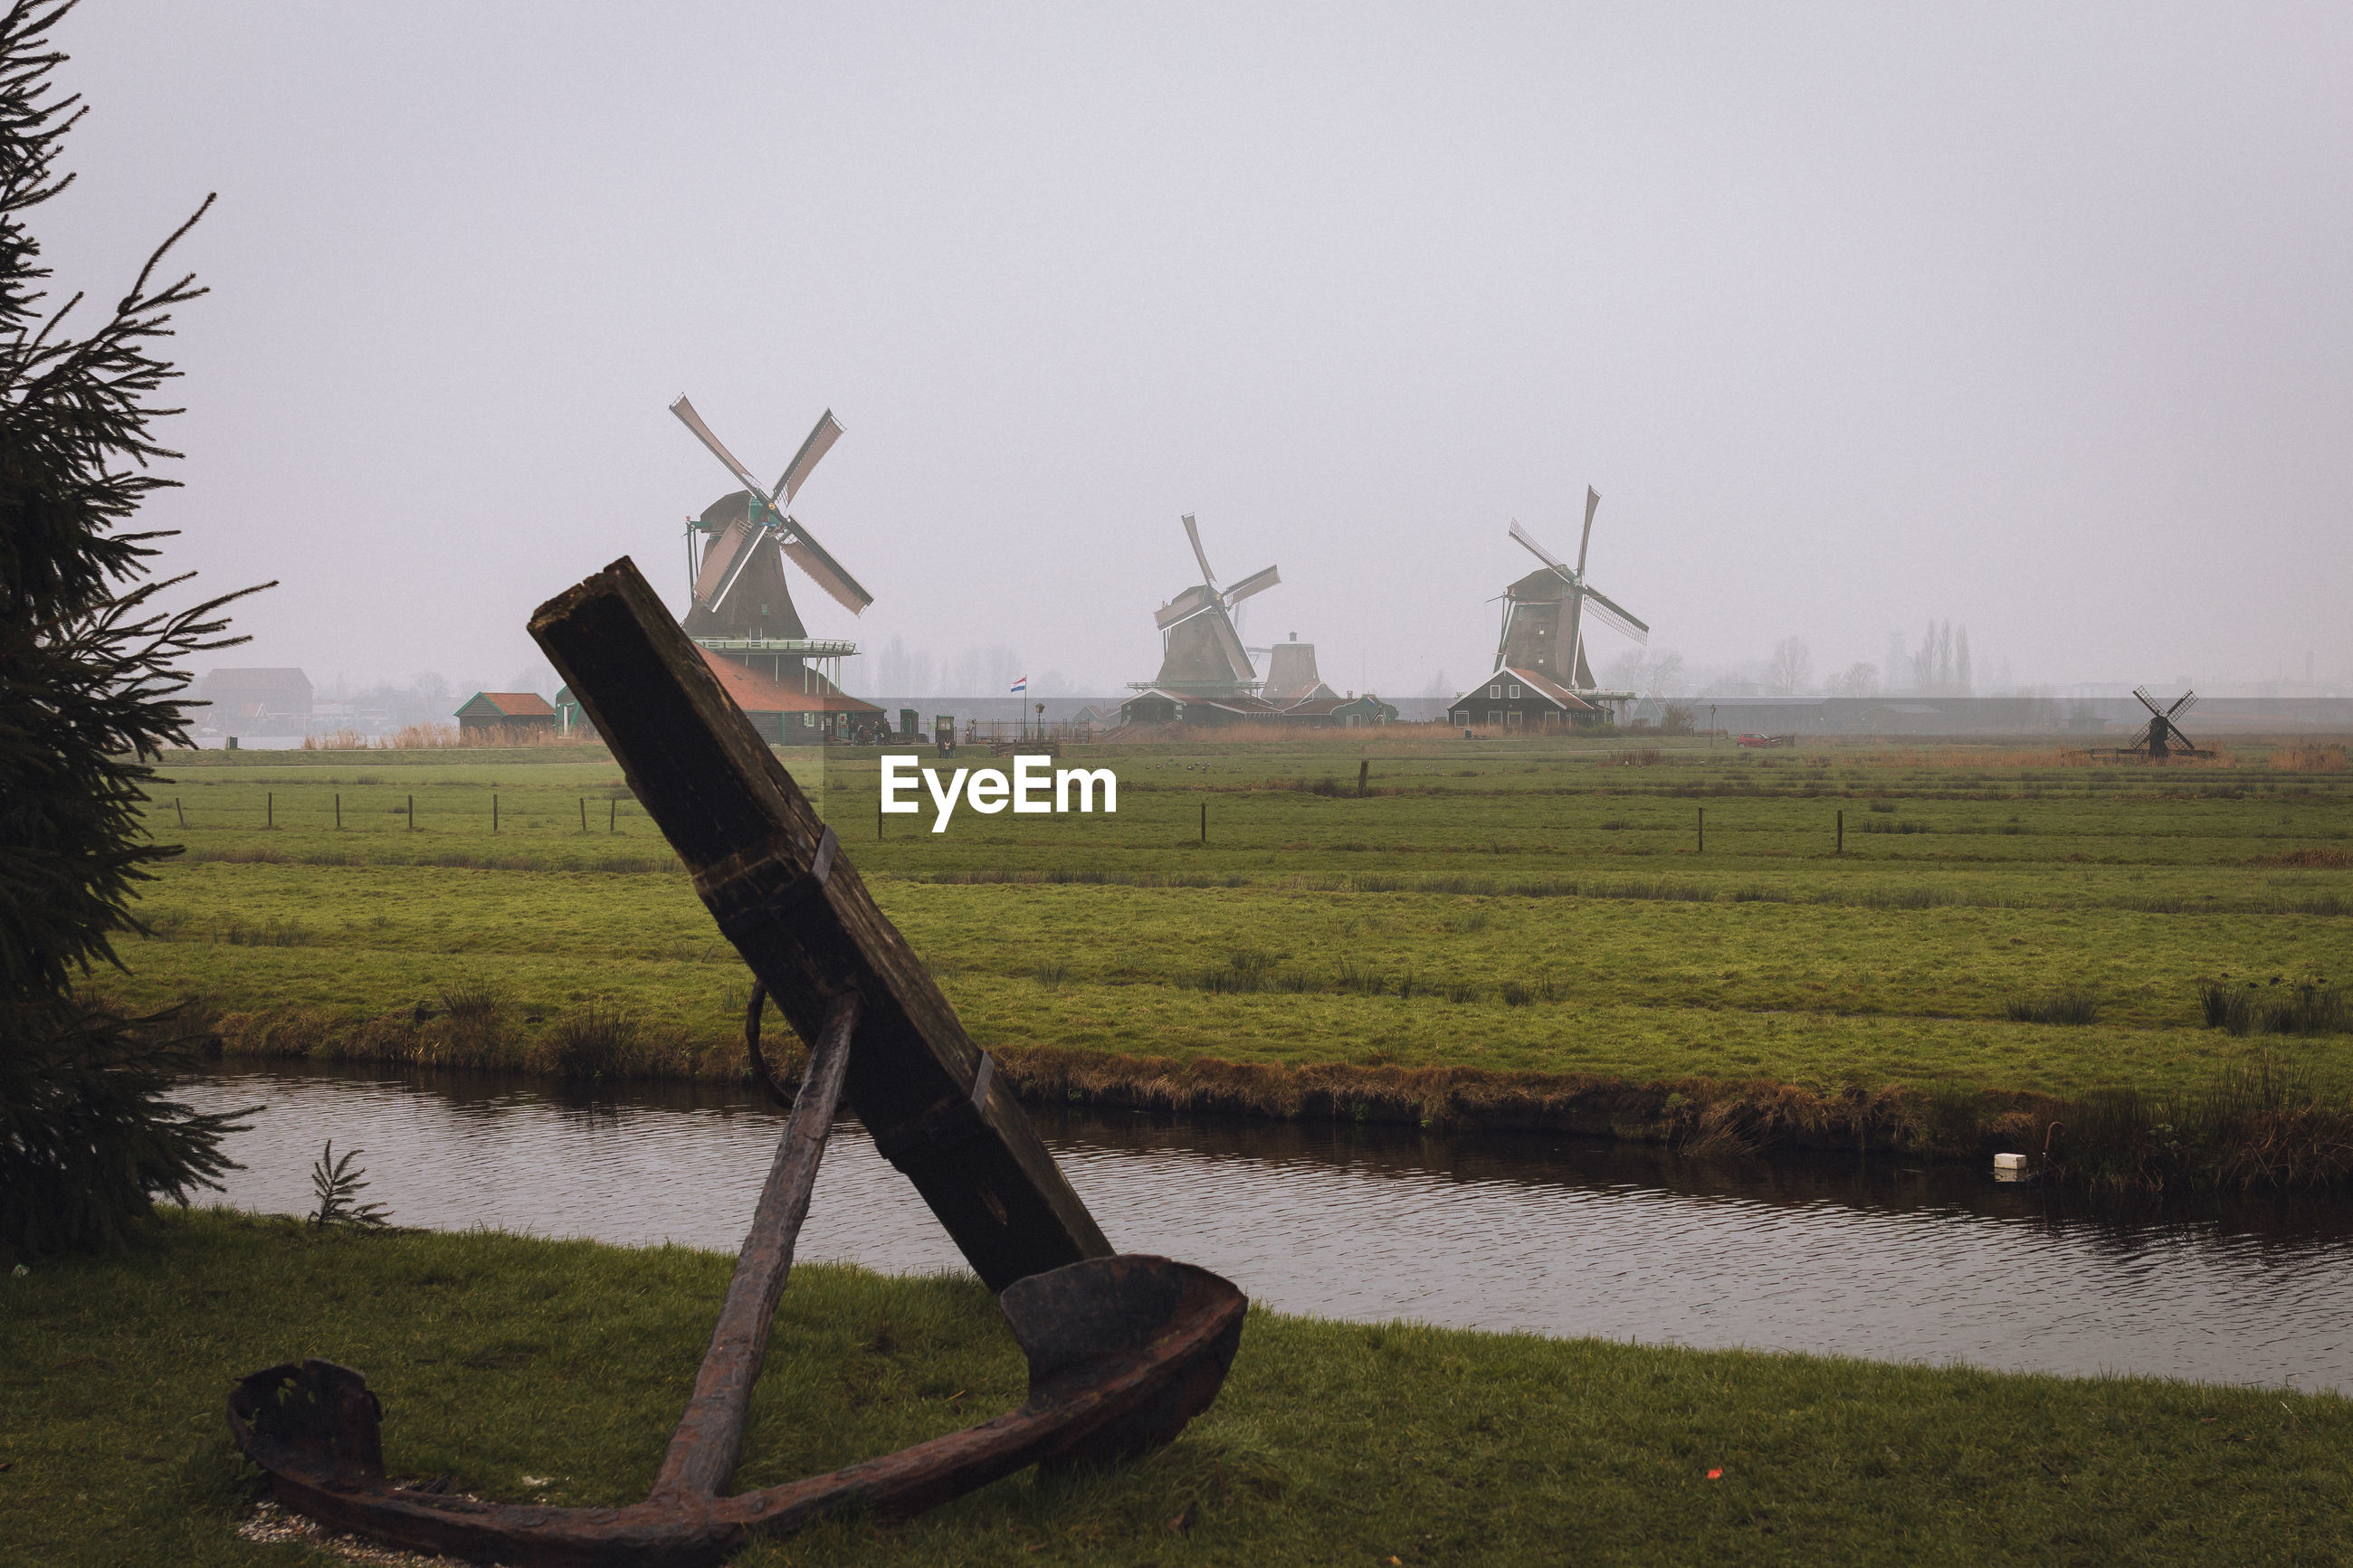 Stream amidst anchor and traditional windmills on field